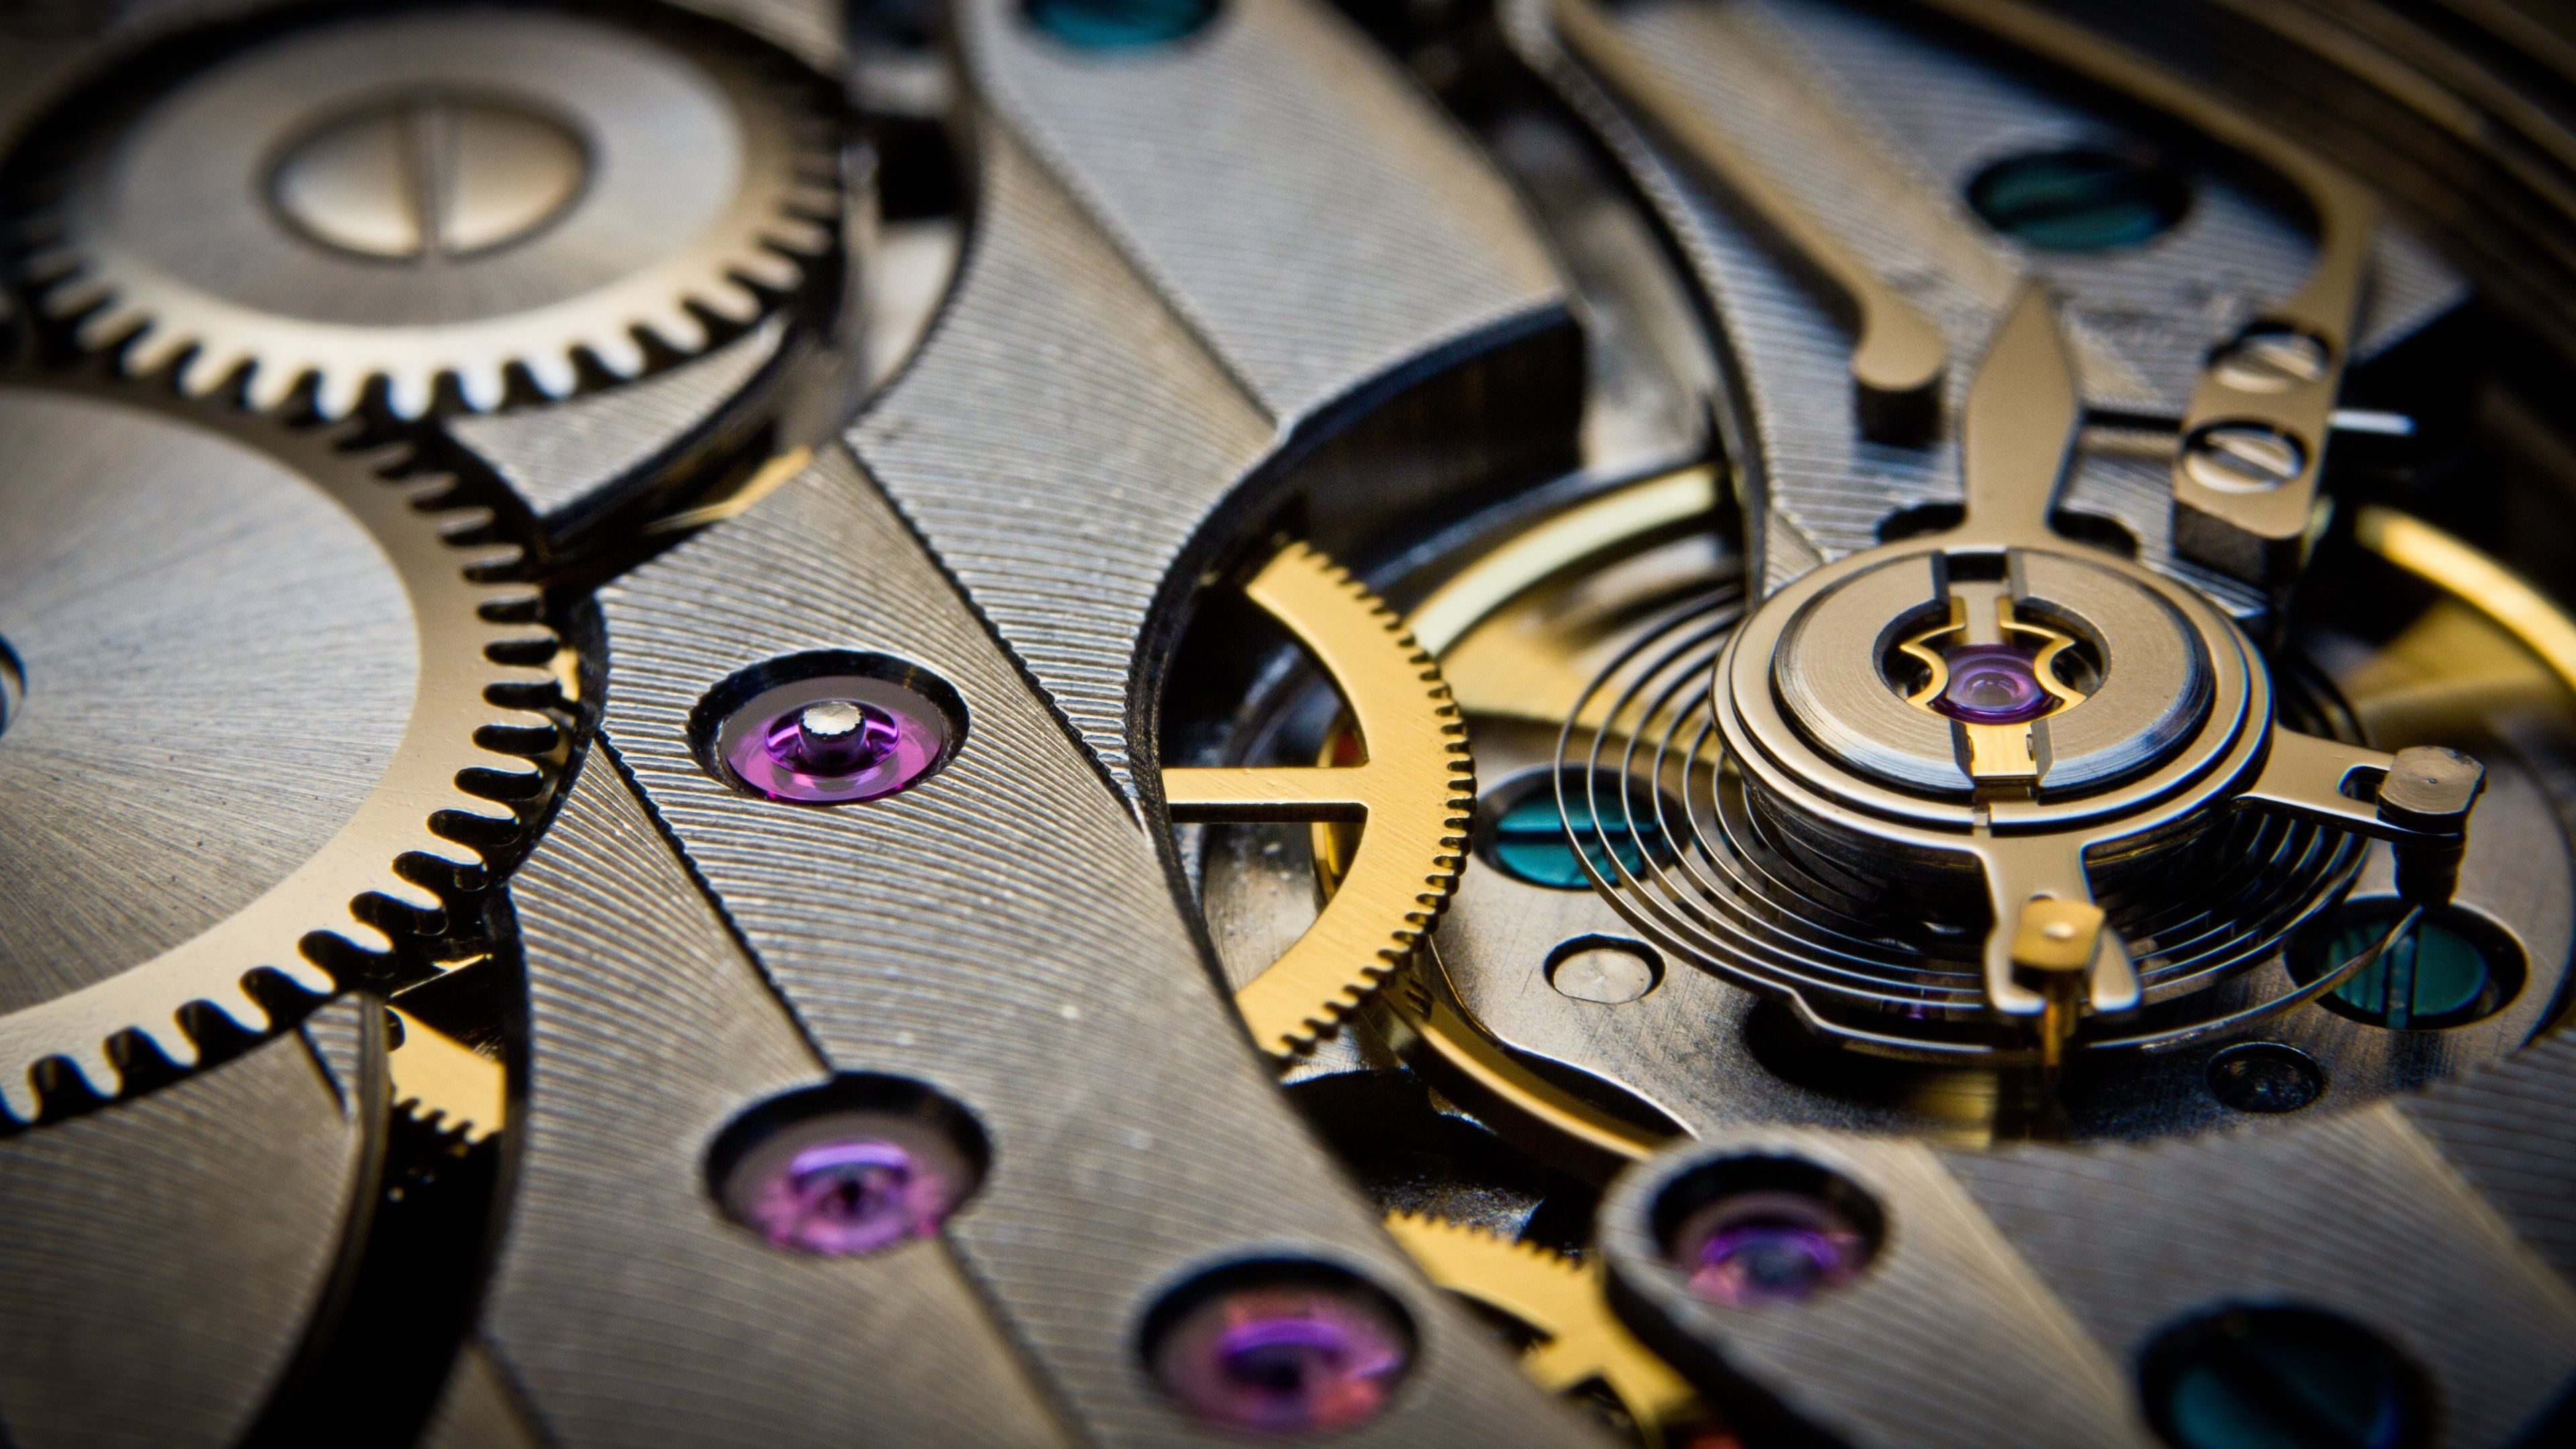 Res: 3840x2160, Gears. Movement. Watch. Time Wallpapers :: HD Wallpapers